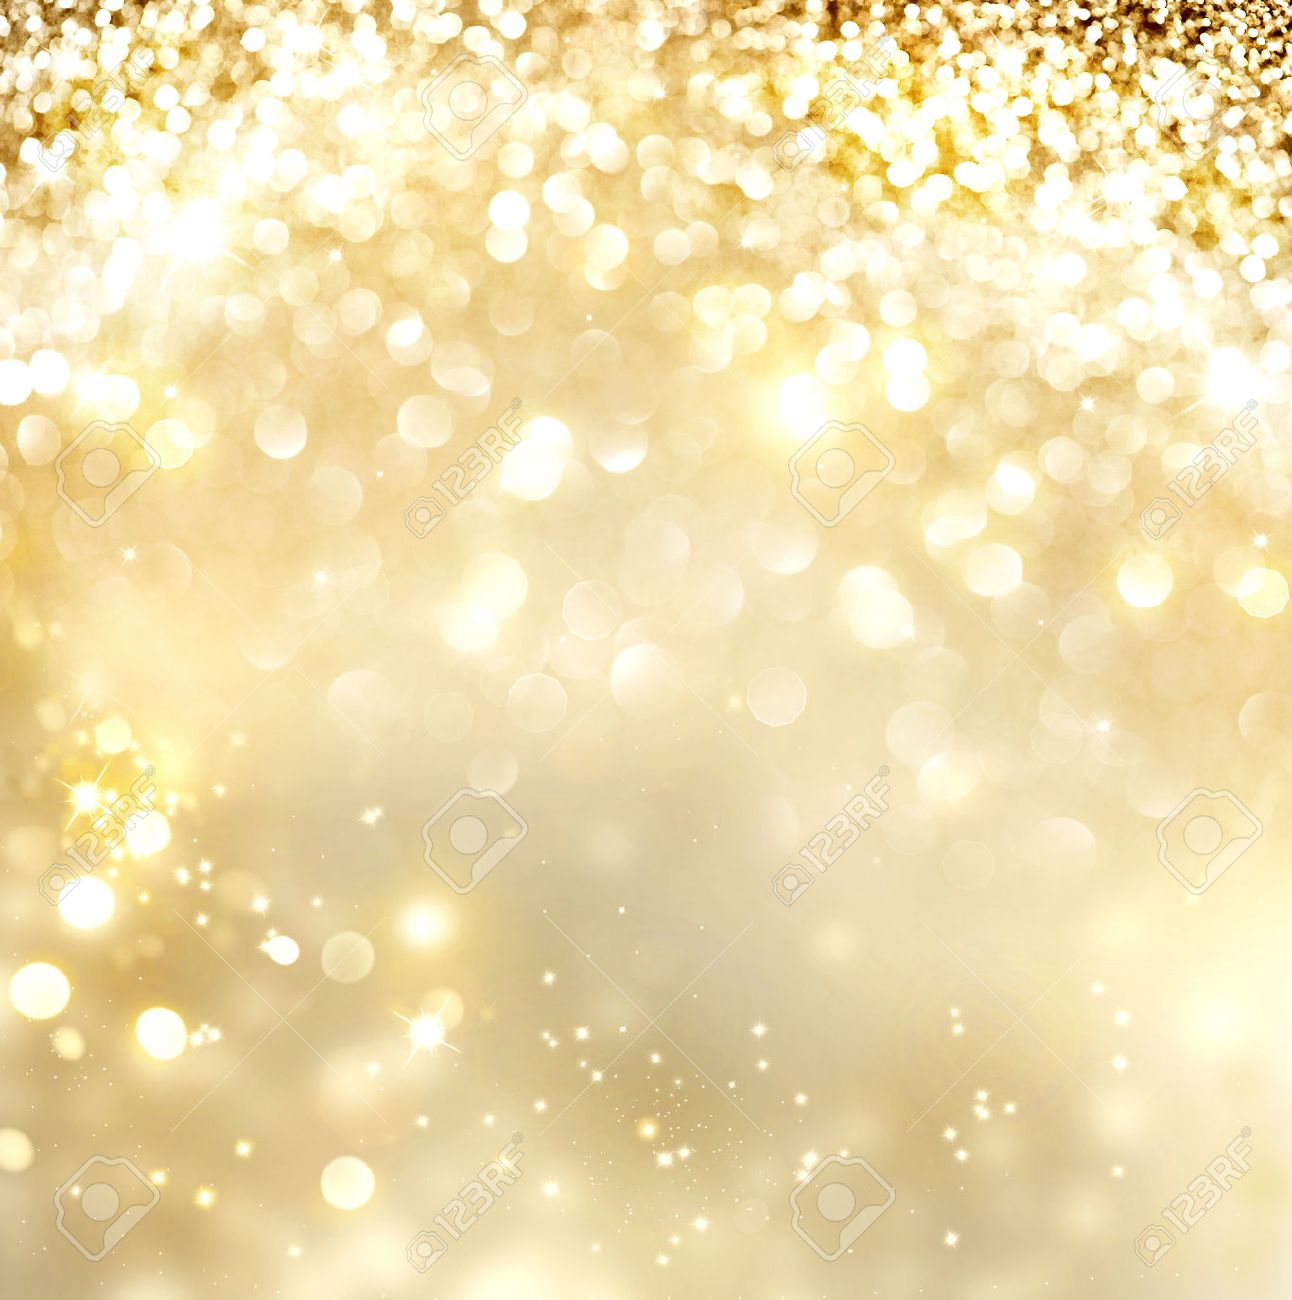 Christmas Background Images Gold.Christmas Gold Background Golden Holiday Glowing Background